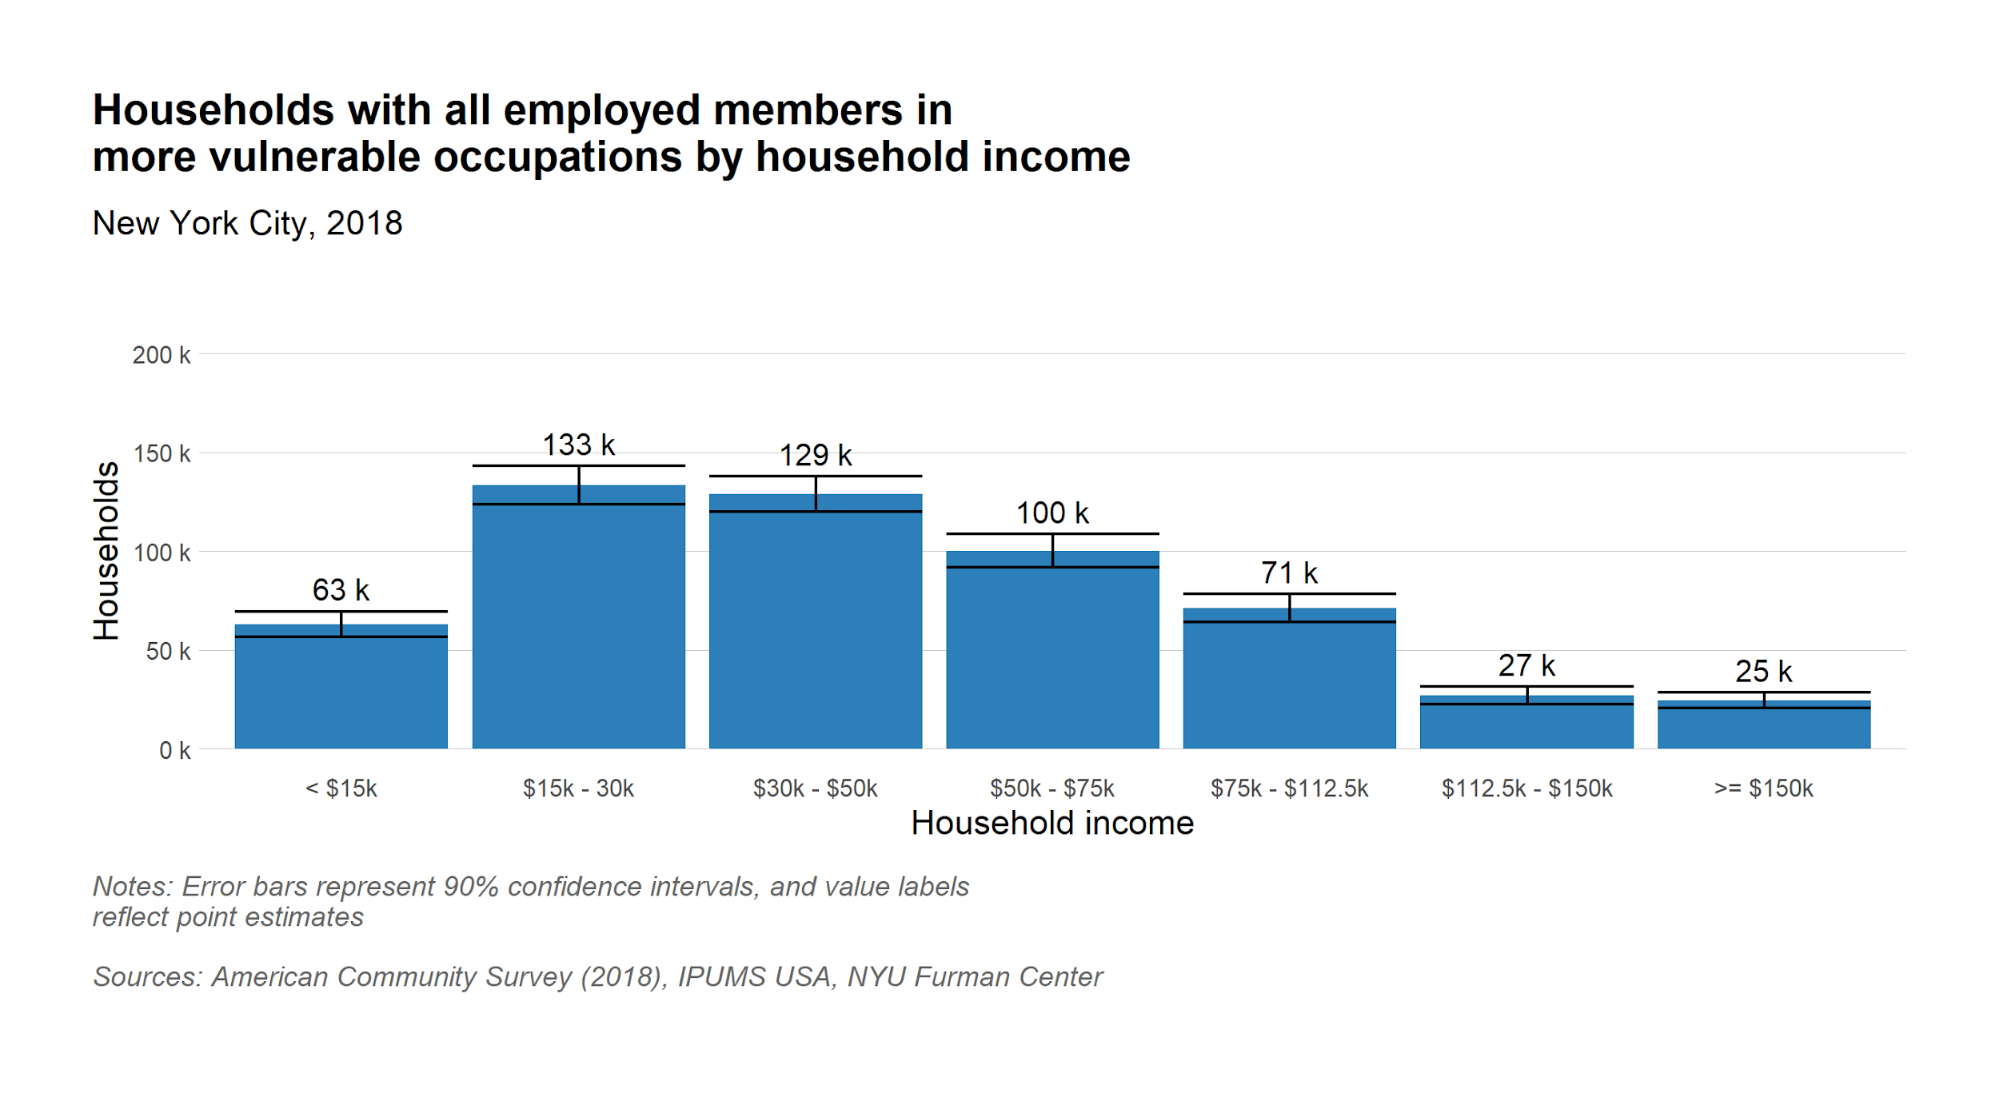 Number of households with all employed members in vulnerable occupations by household income